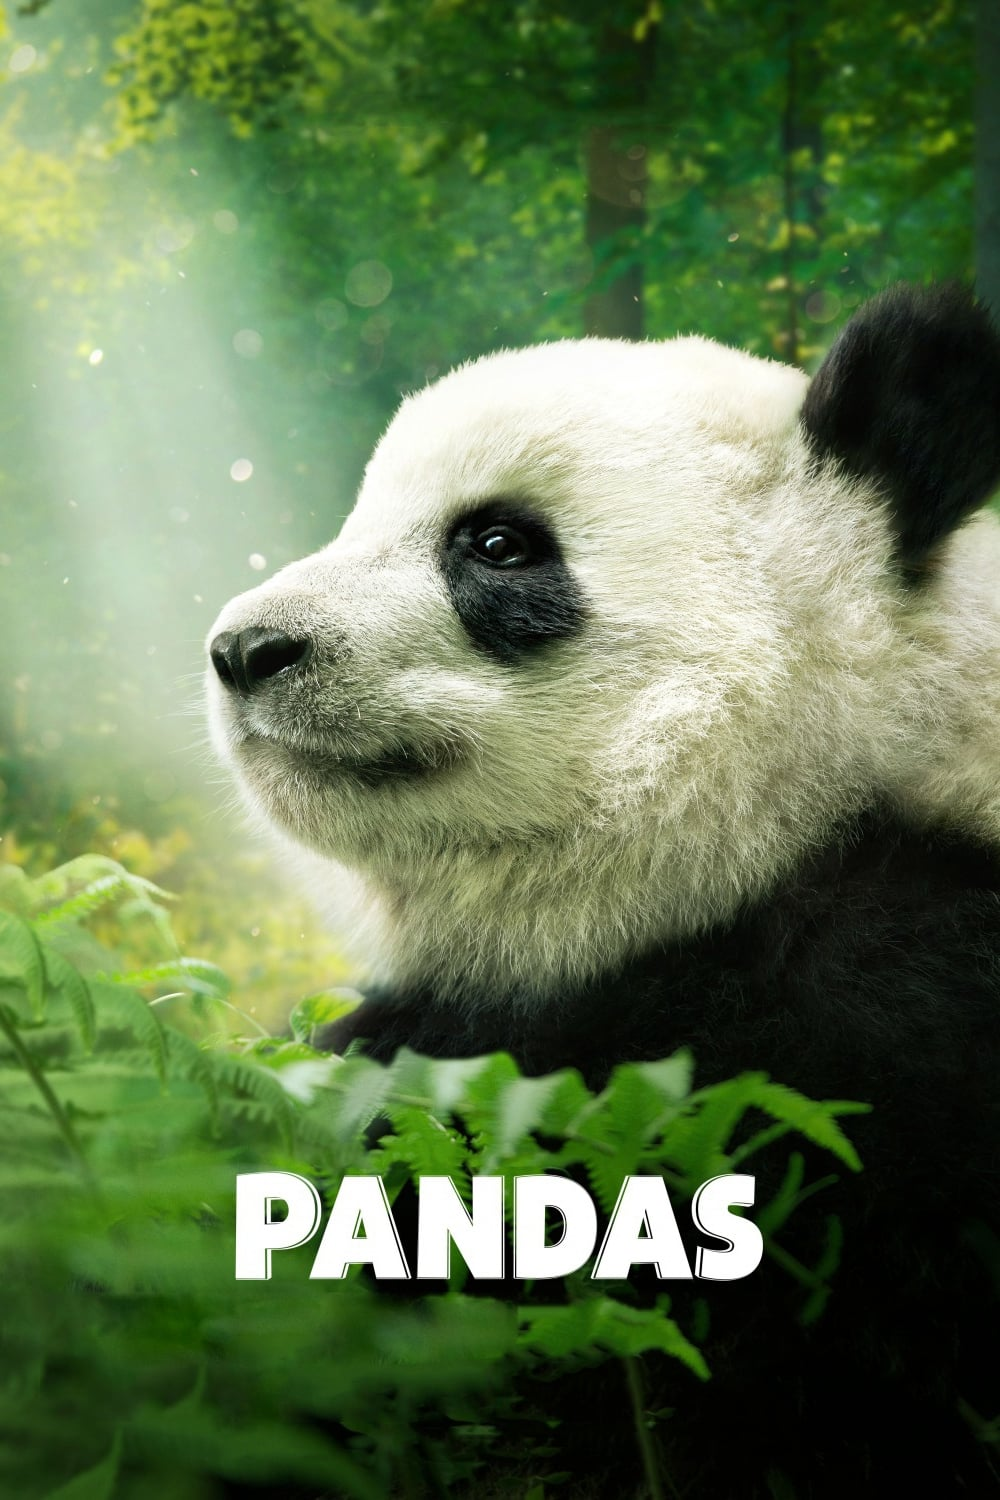 watch pandas 2018 full length movie at iflixmoviescom